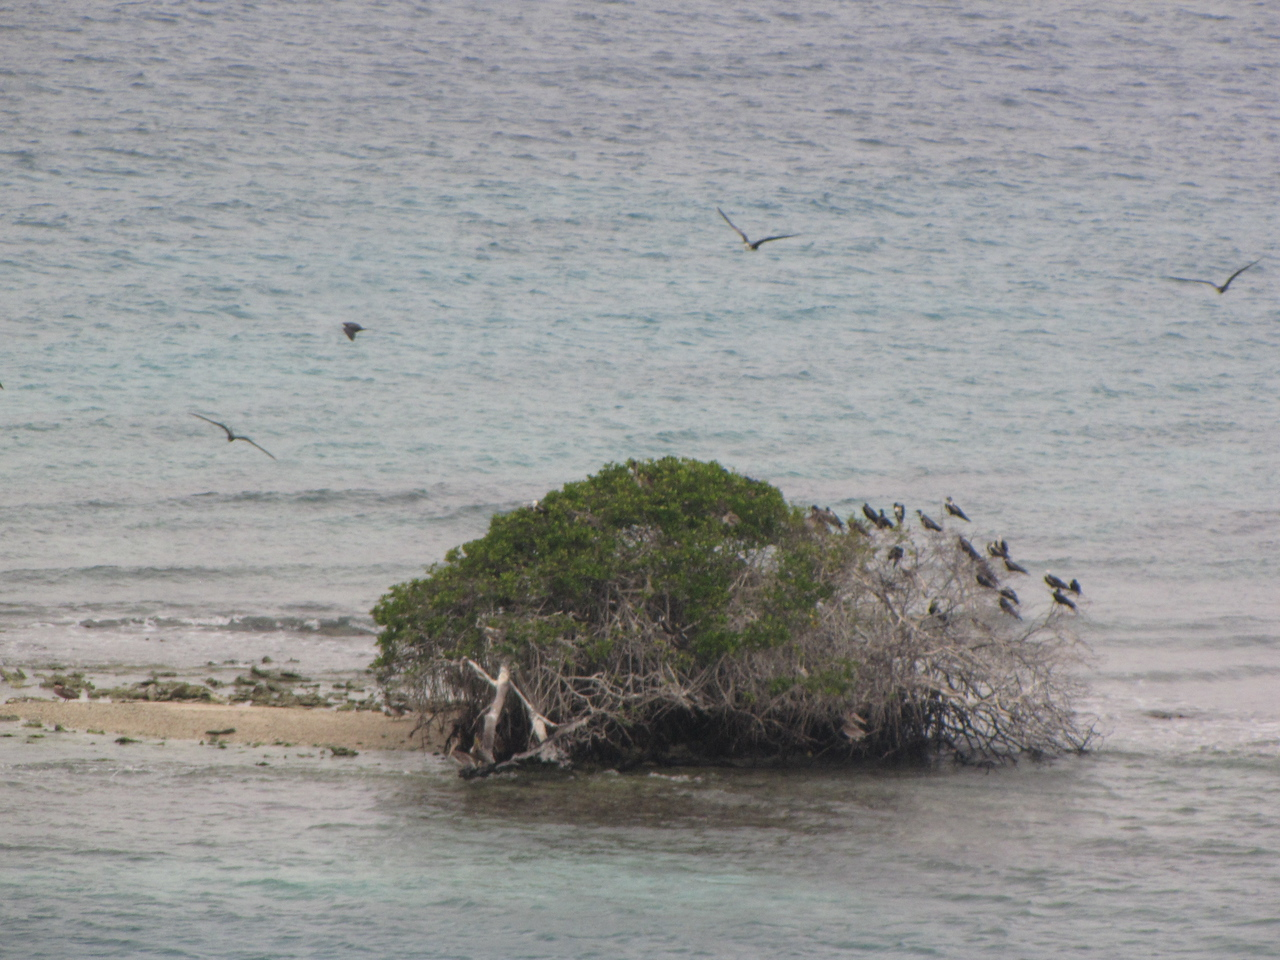 This lone tree on the island attracted lots of birds.